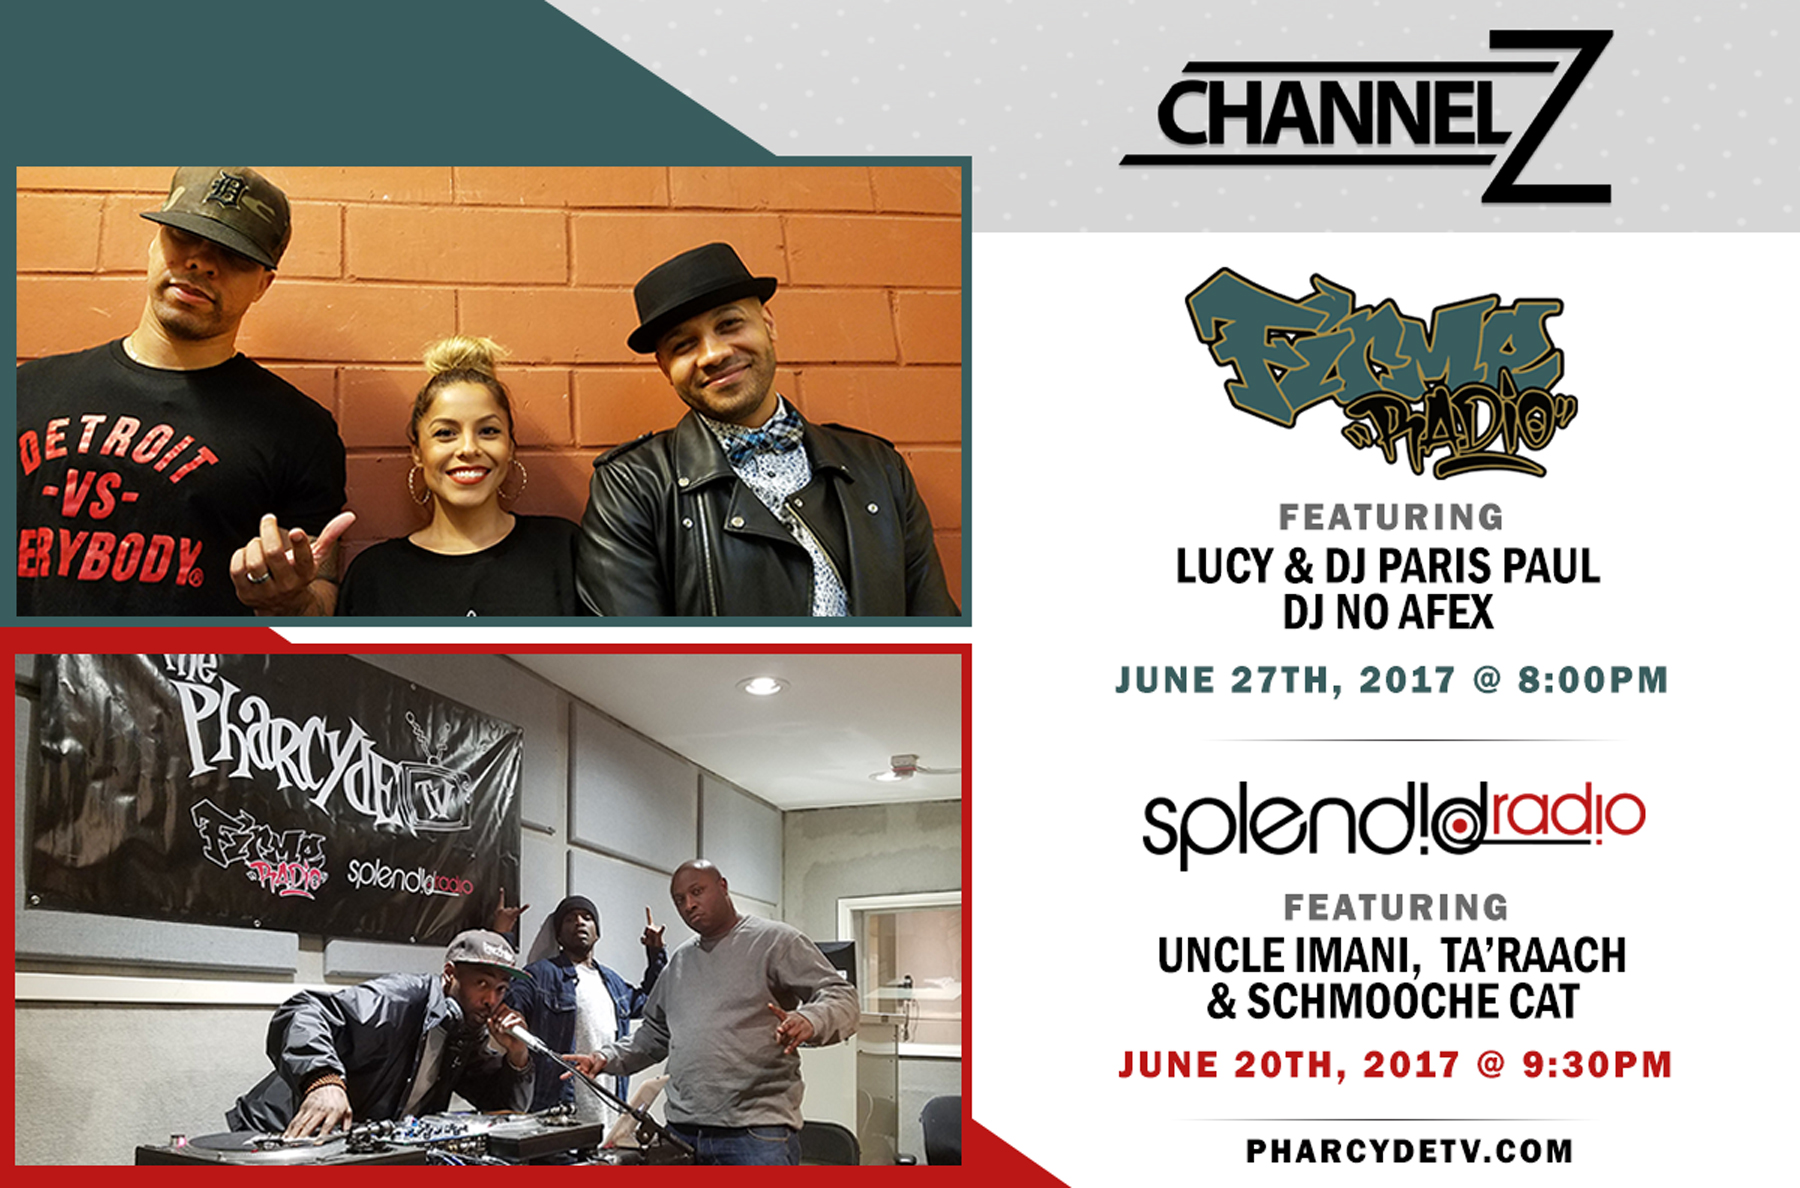 Re broadcast Firme Radio EP 33 w/ Lucy, Paris Paul and DJ NoAfex…. Splendid Radio ep 34 w/ Schmooche Cat UncleImani and Ta'Raach